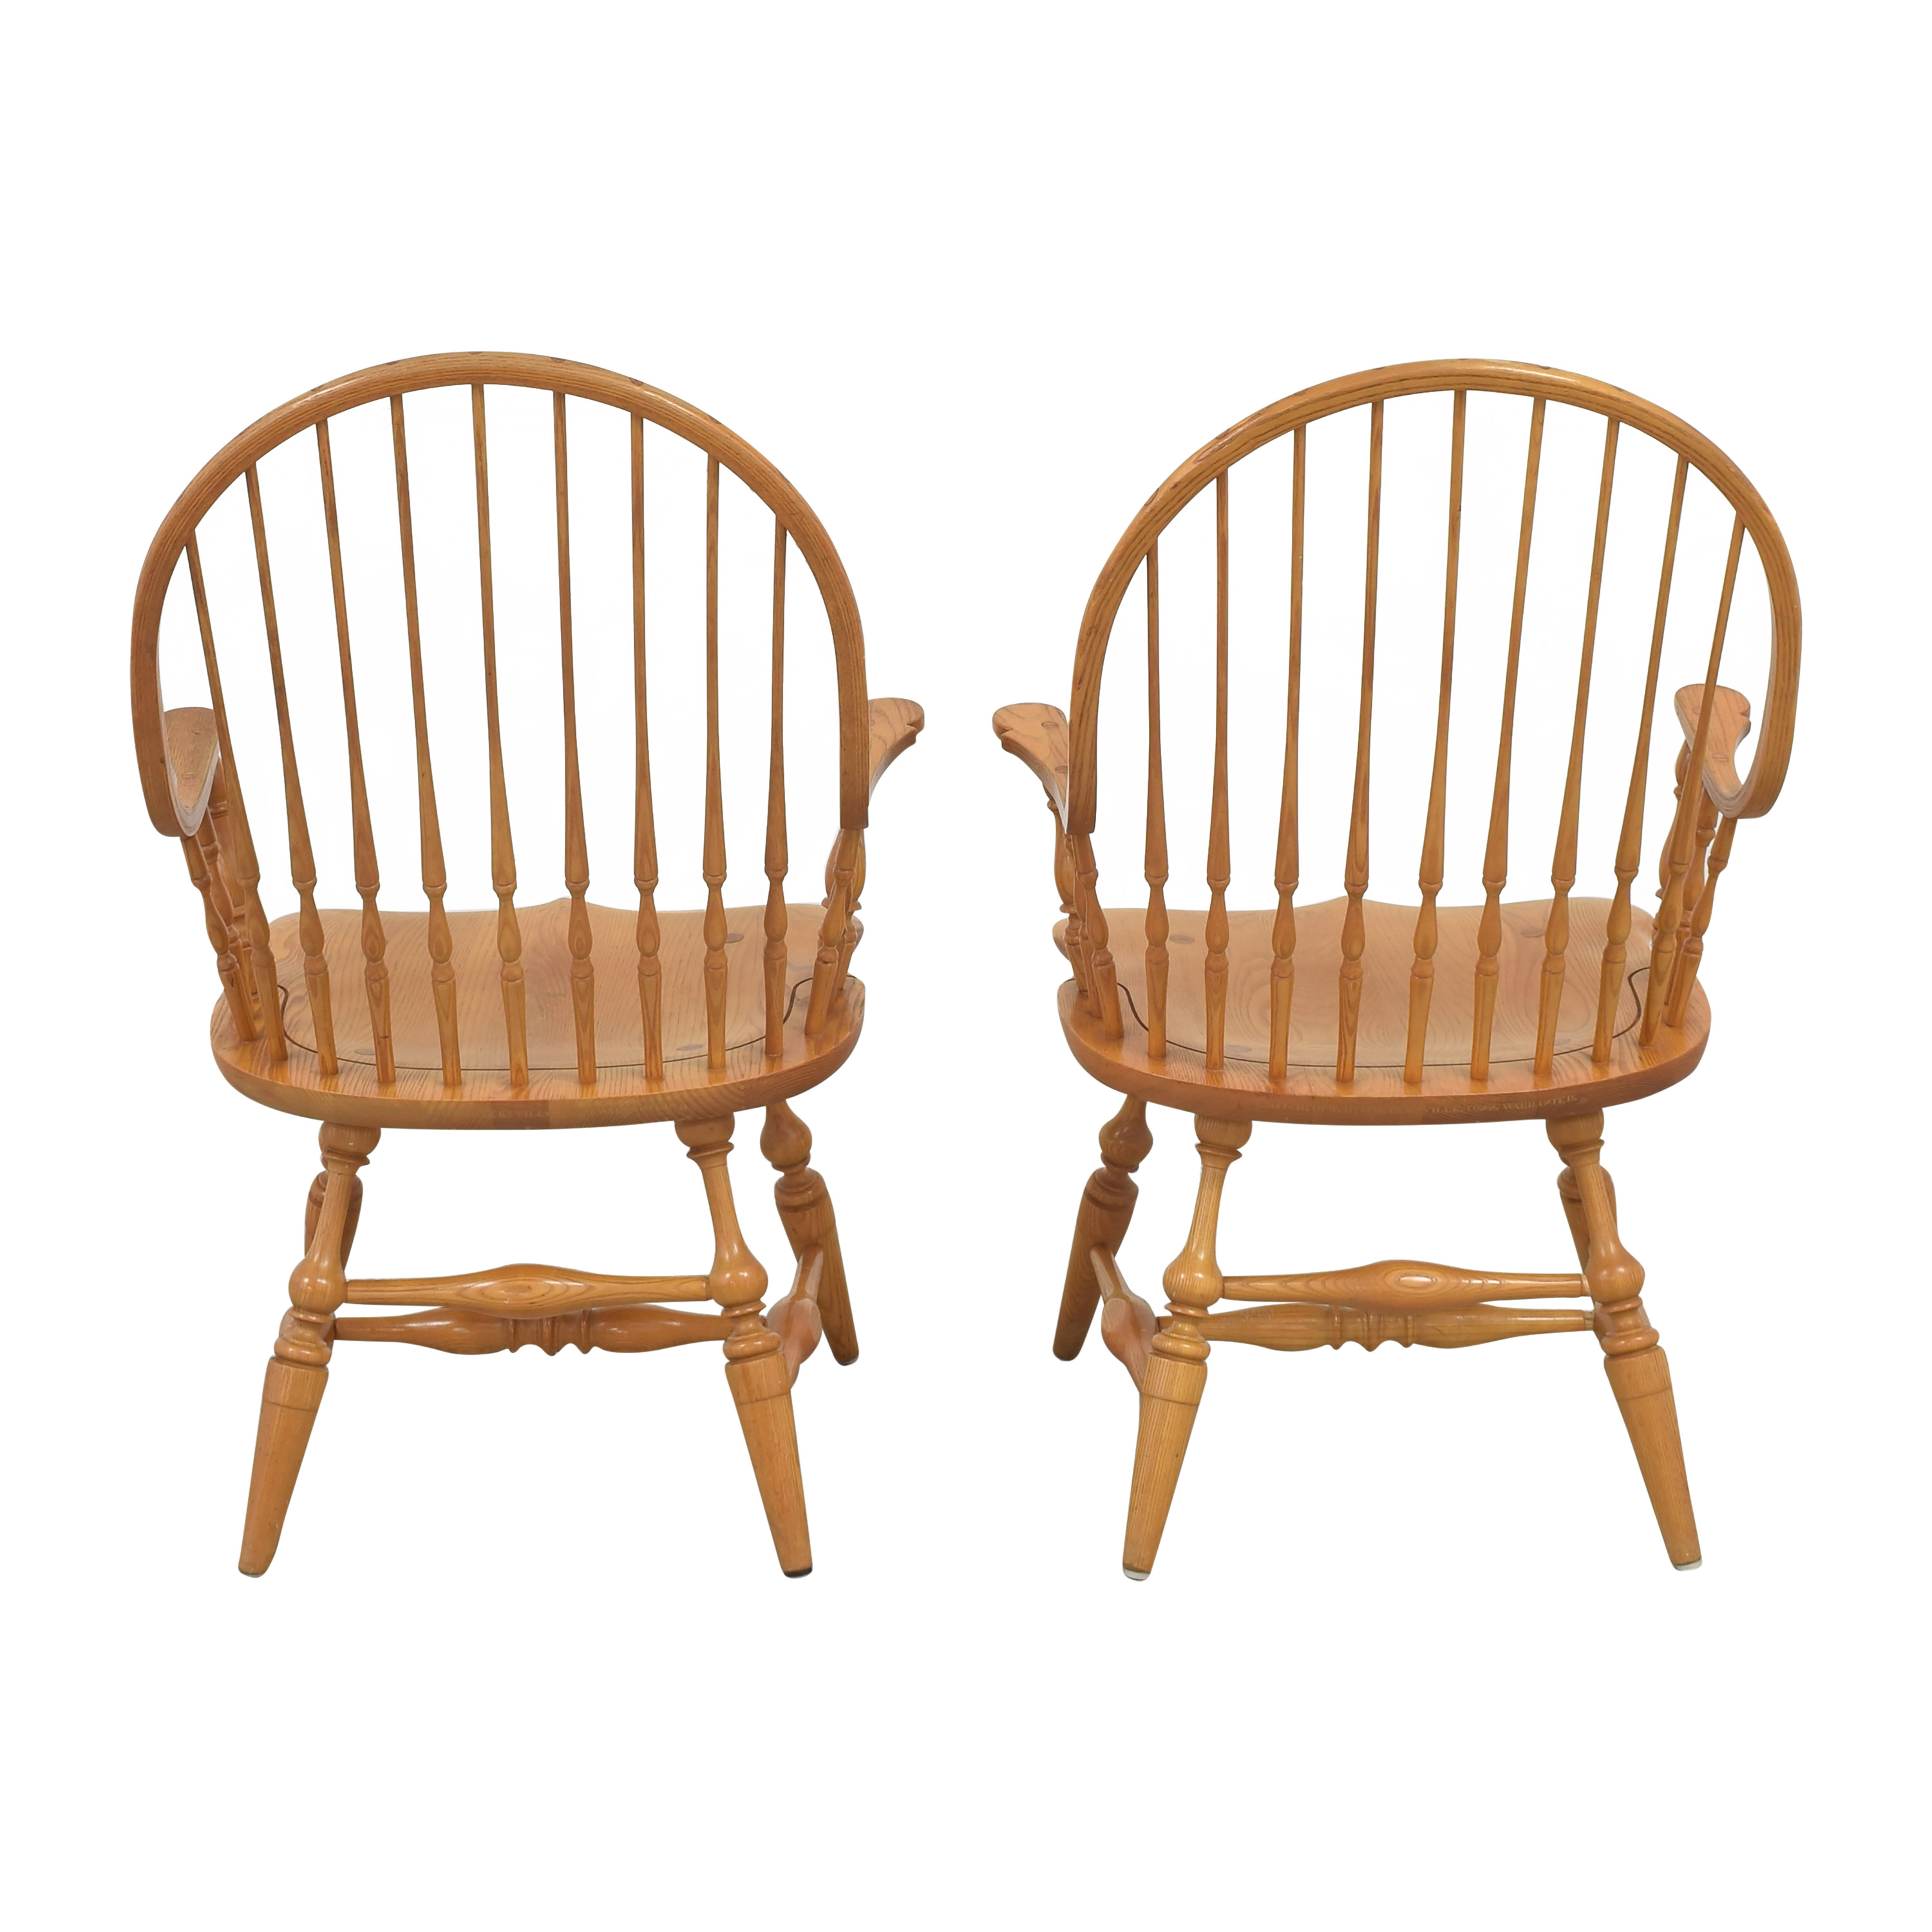 Hitchcock Hitchcock Windsor Style Dining Chairs coupon